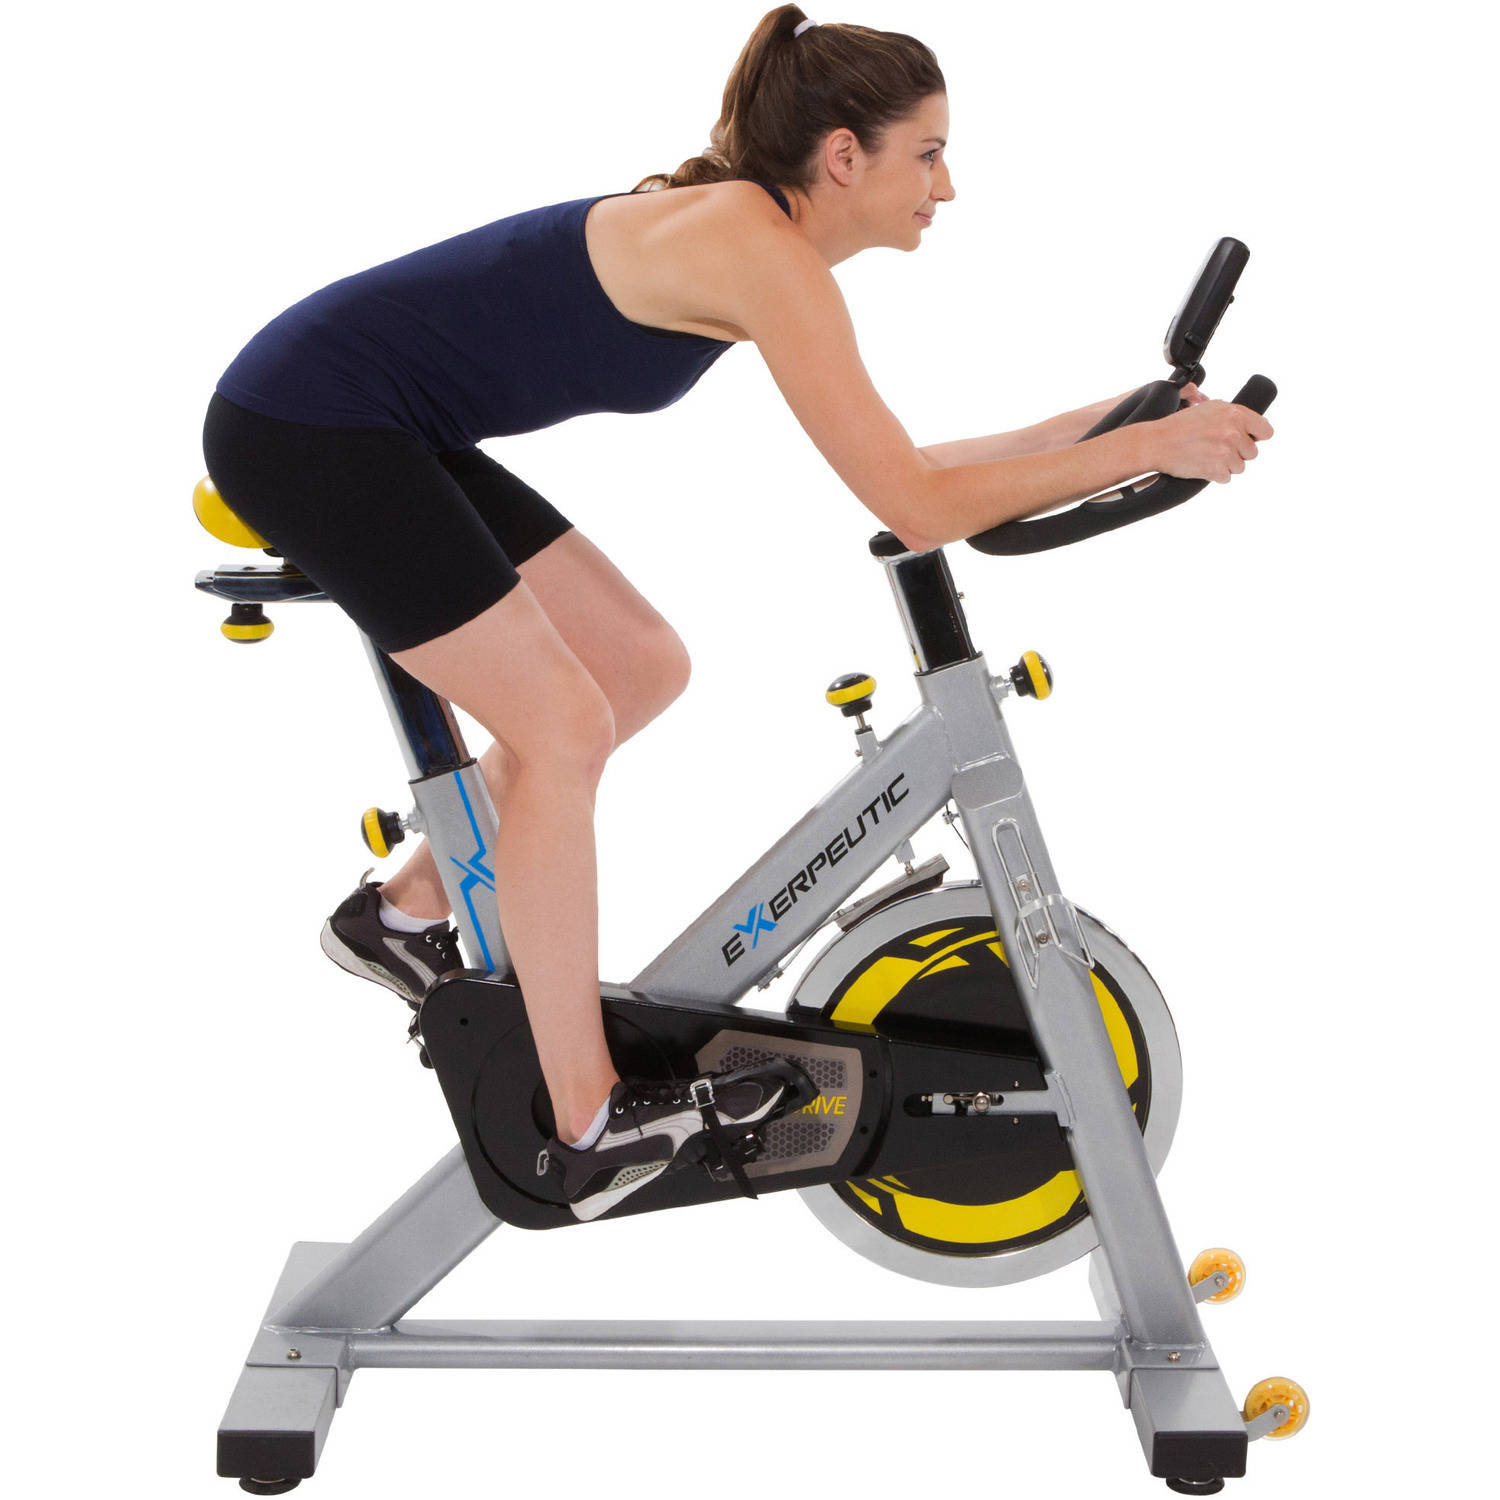 Exerpeutic LX905 Indoor Exercise Cycling Bike with Computer and Heart Pulse Sensors